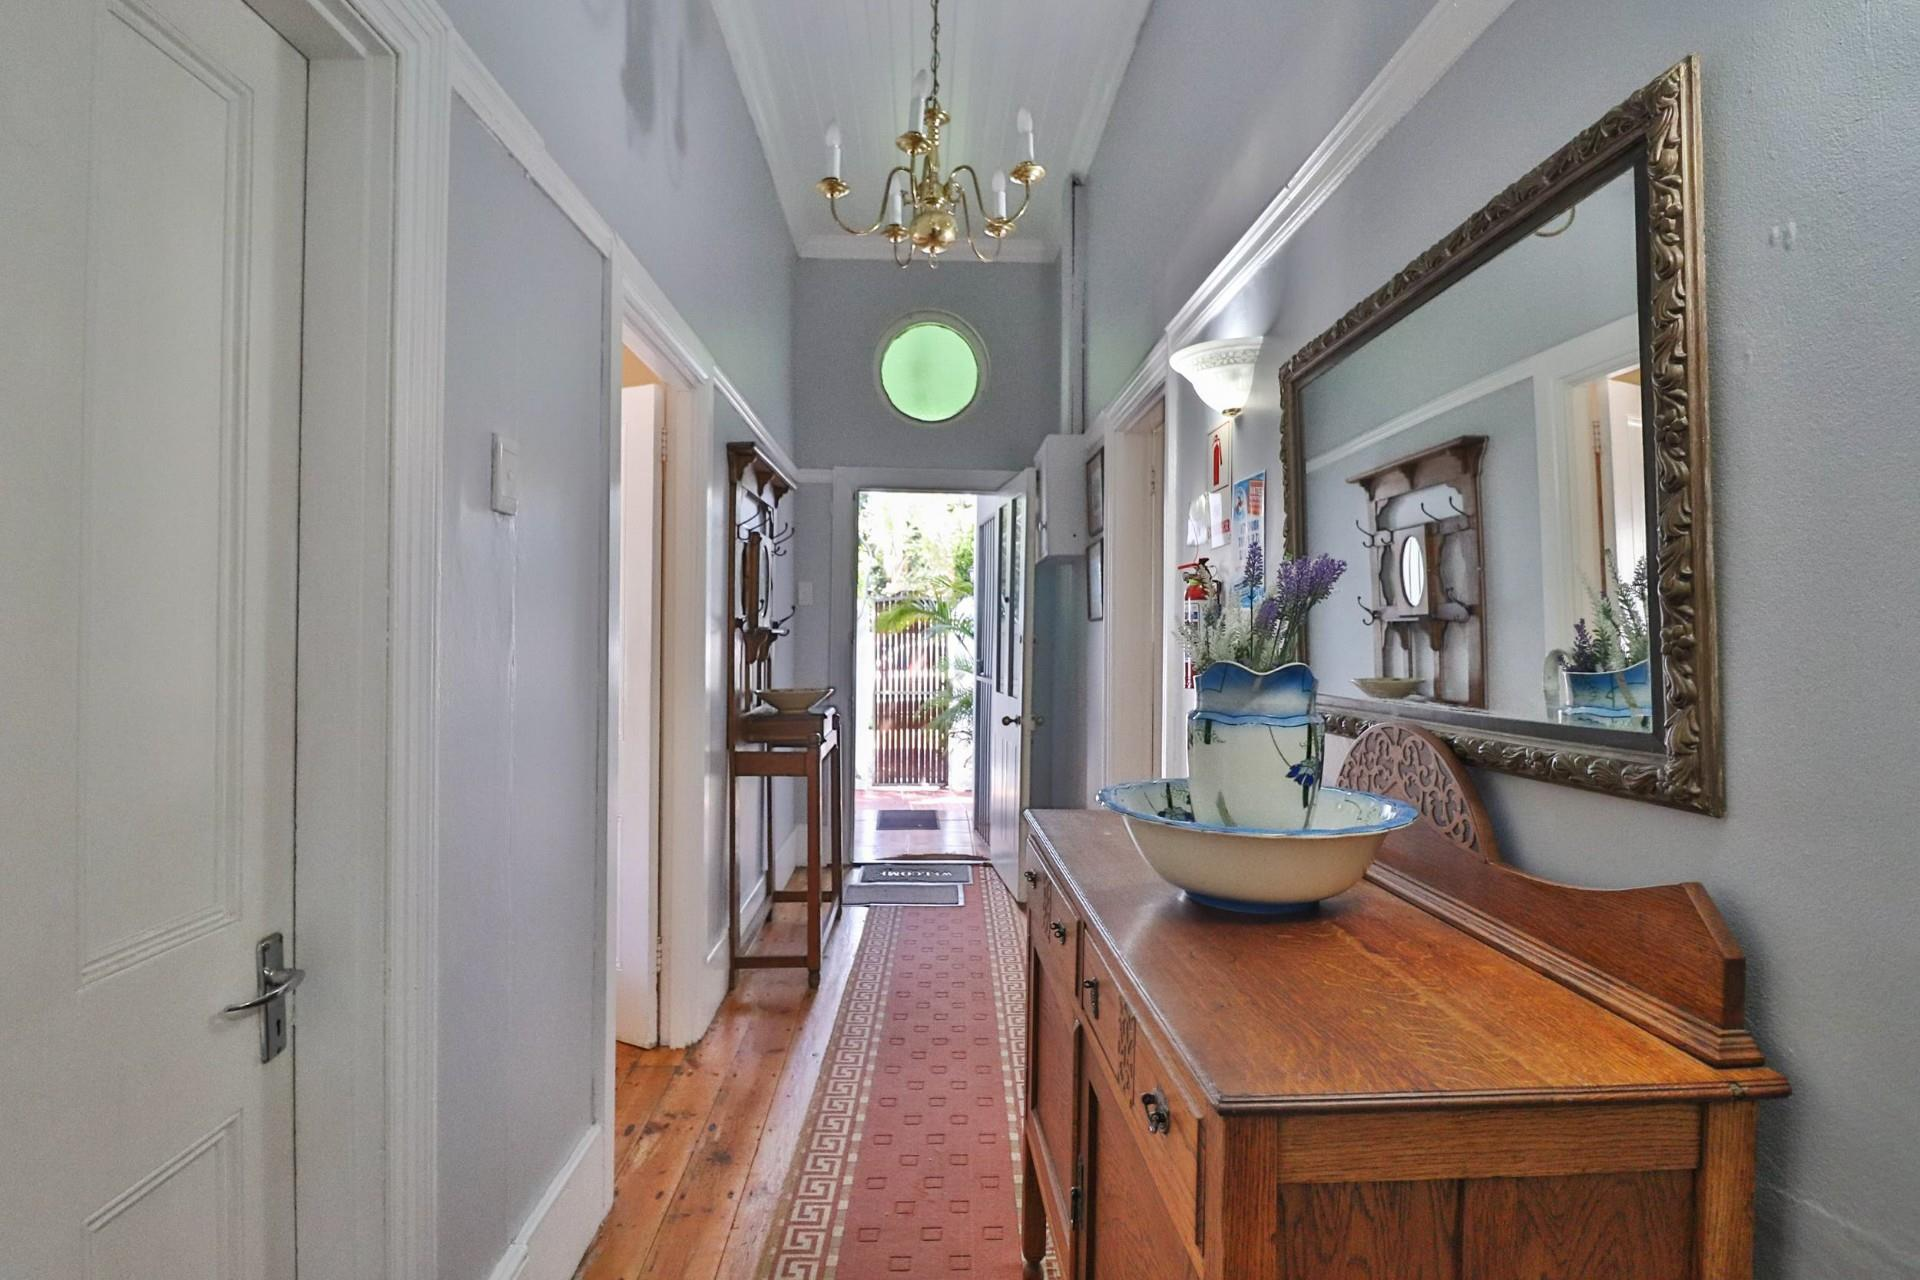 7 Bedroom House For Sale in Walmer